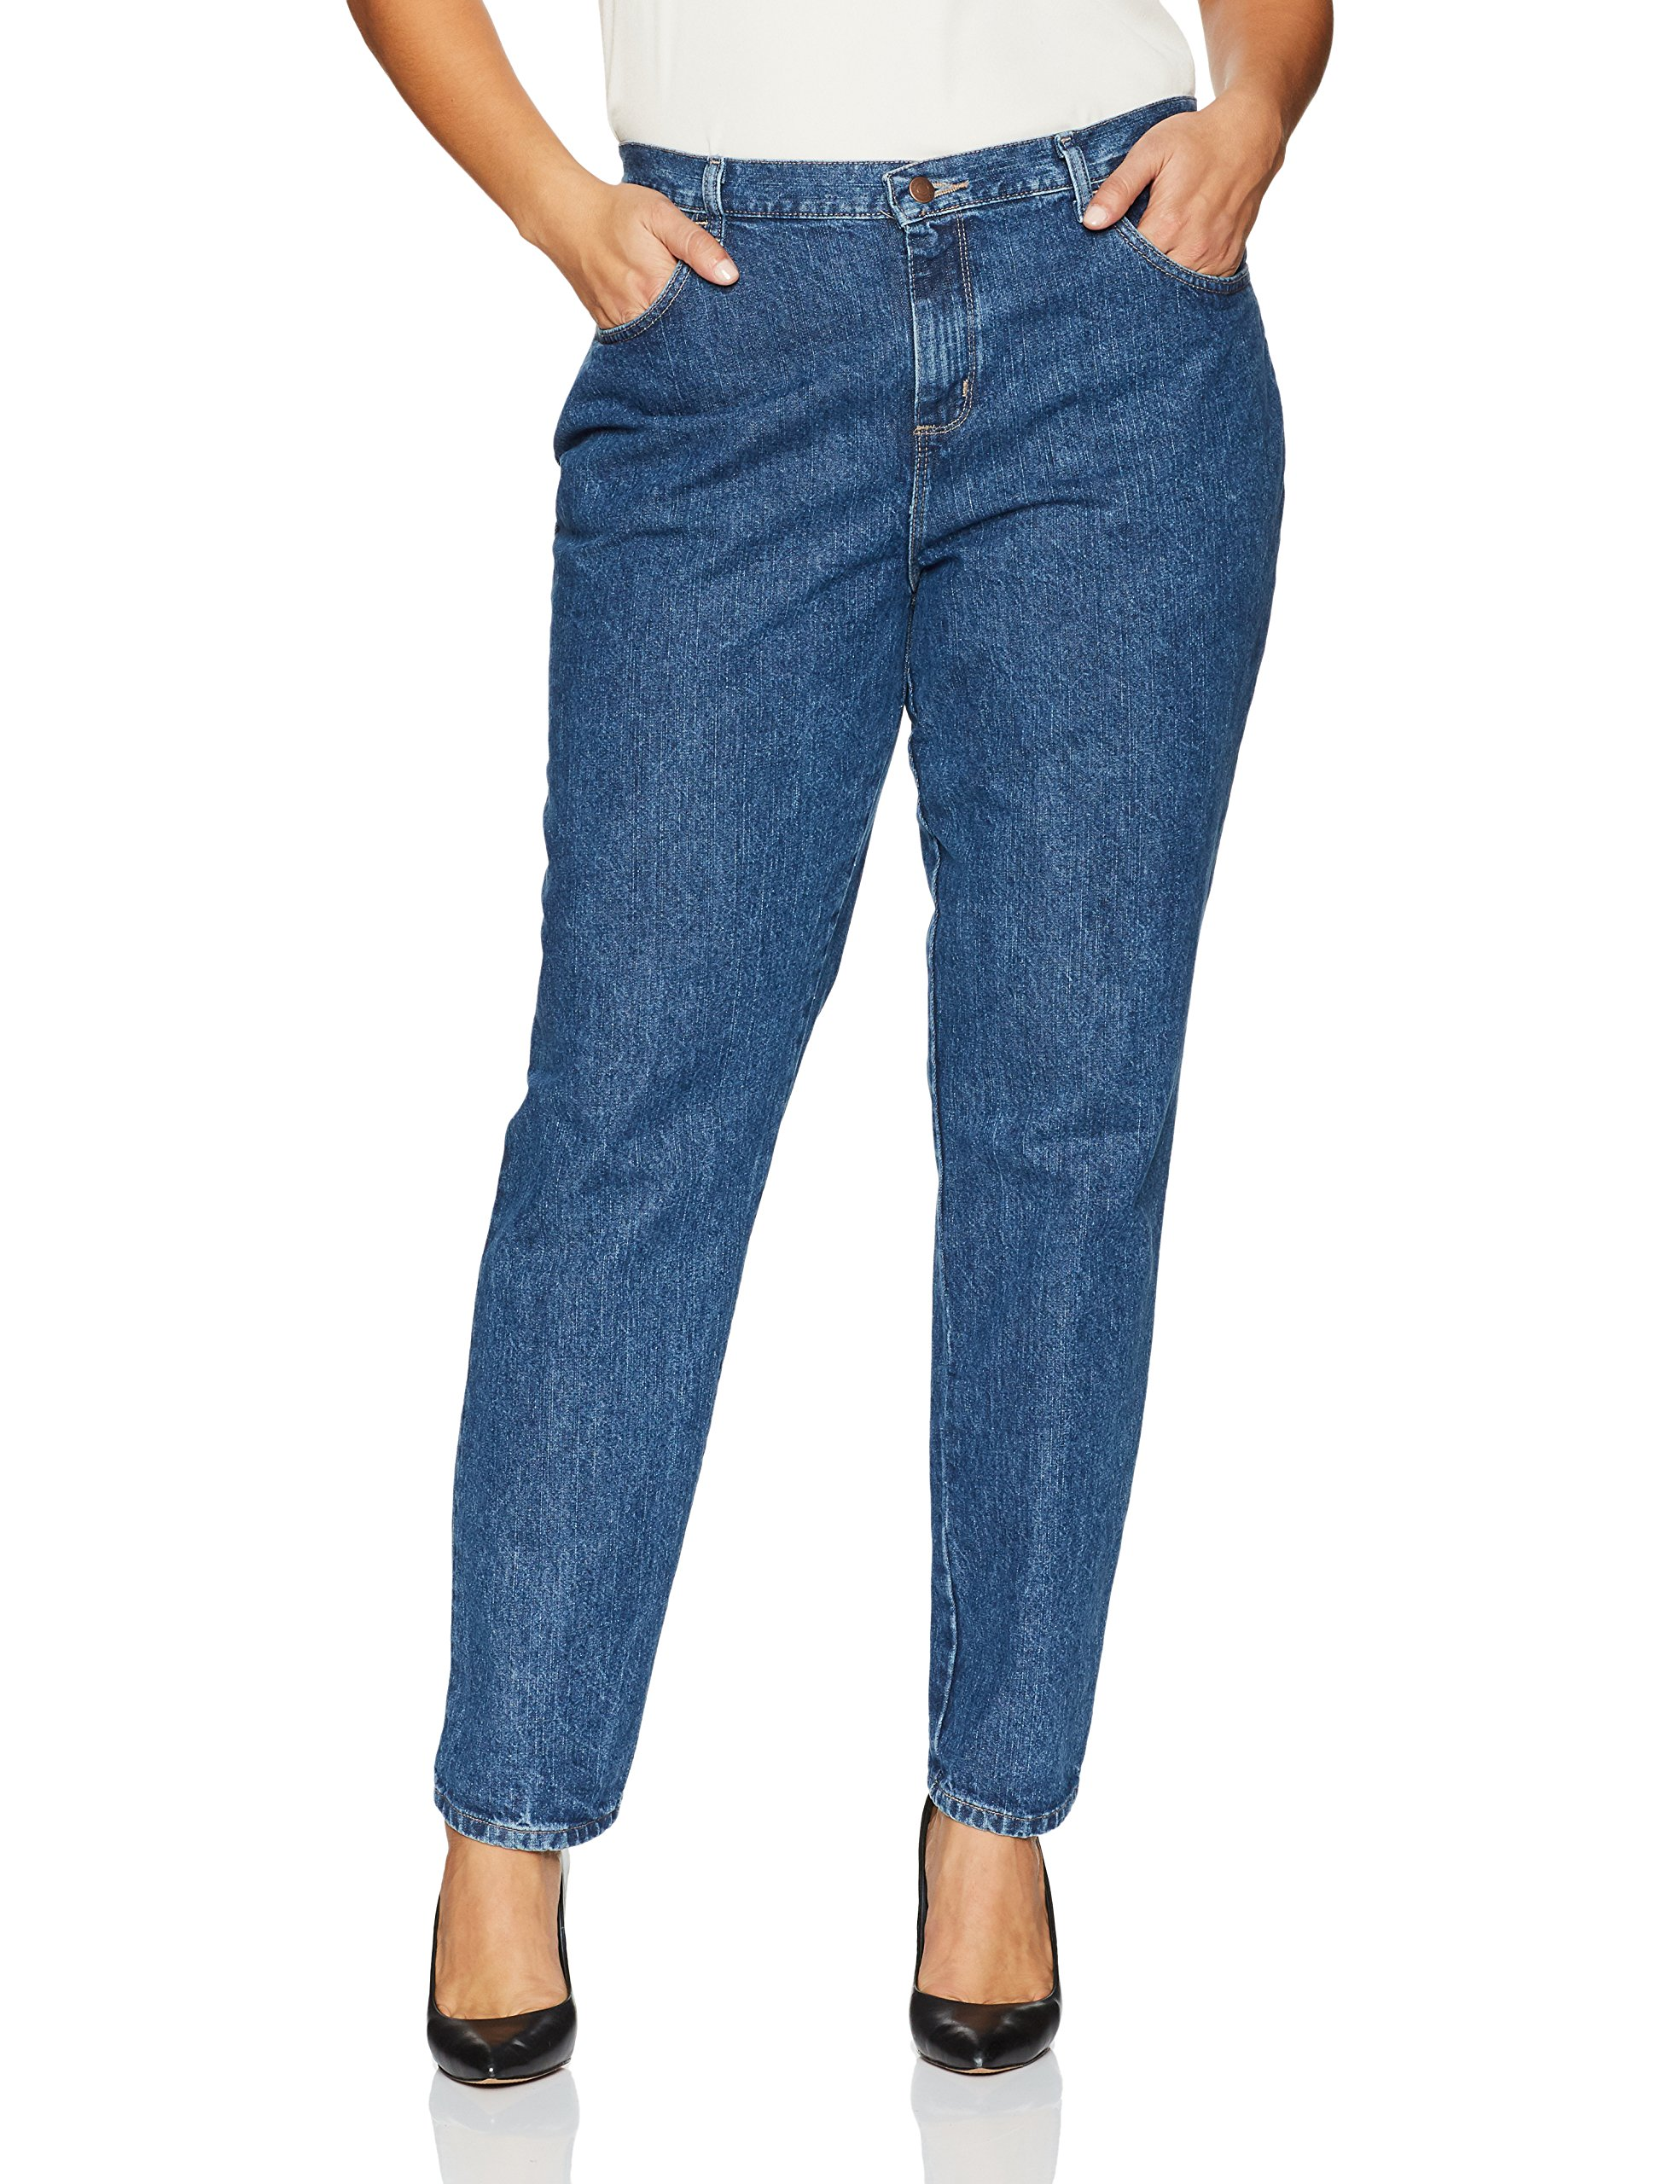 LEE Women's Plus-Size Relaxed Fit All Cotton Straight Leg Jean, Livia, 30W Petite